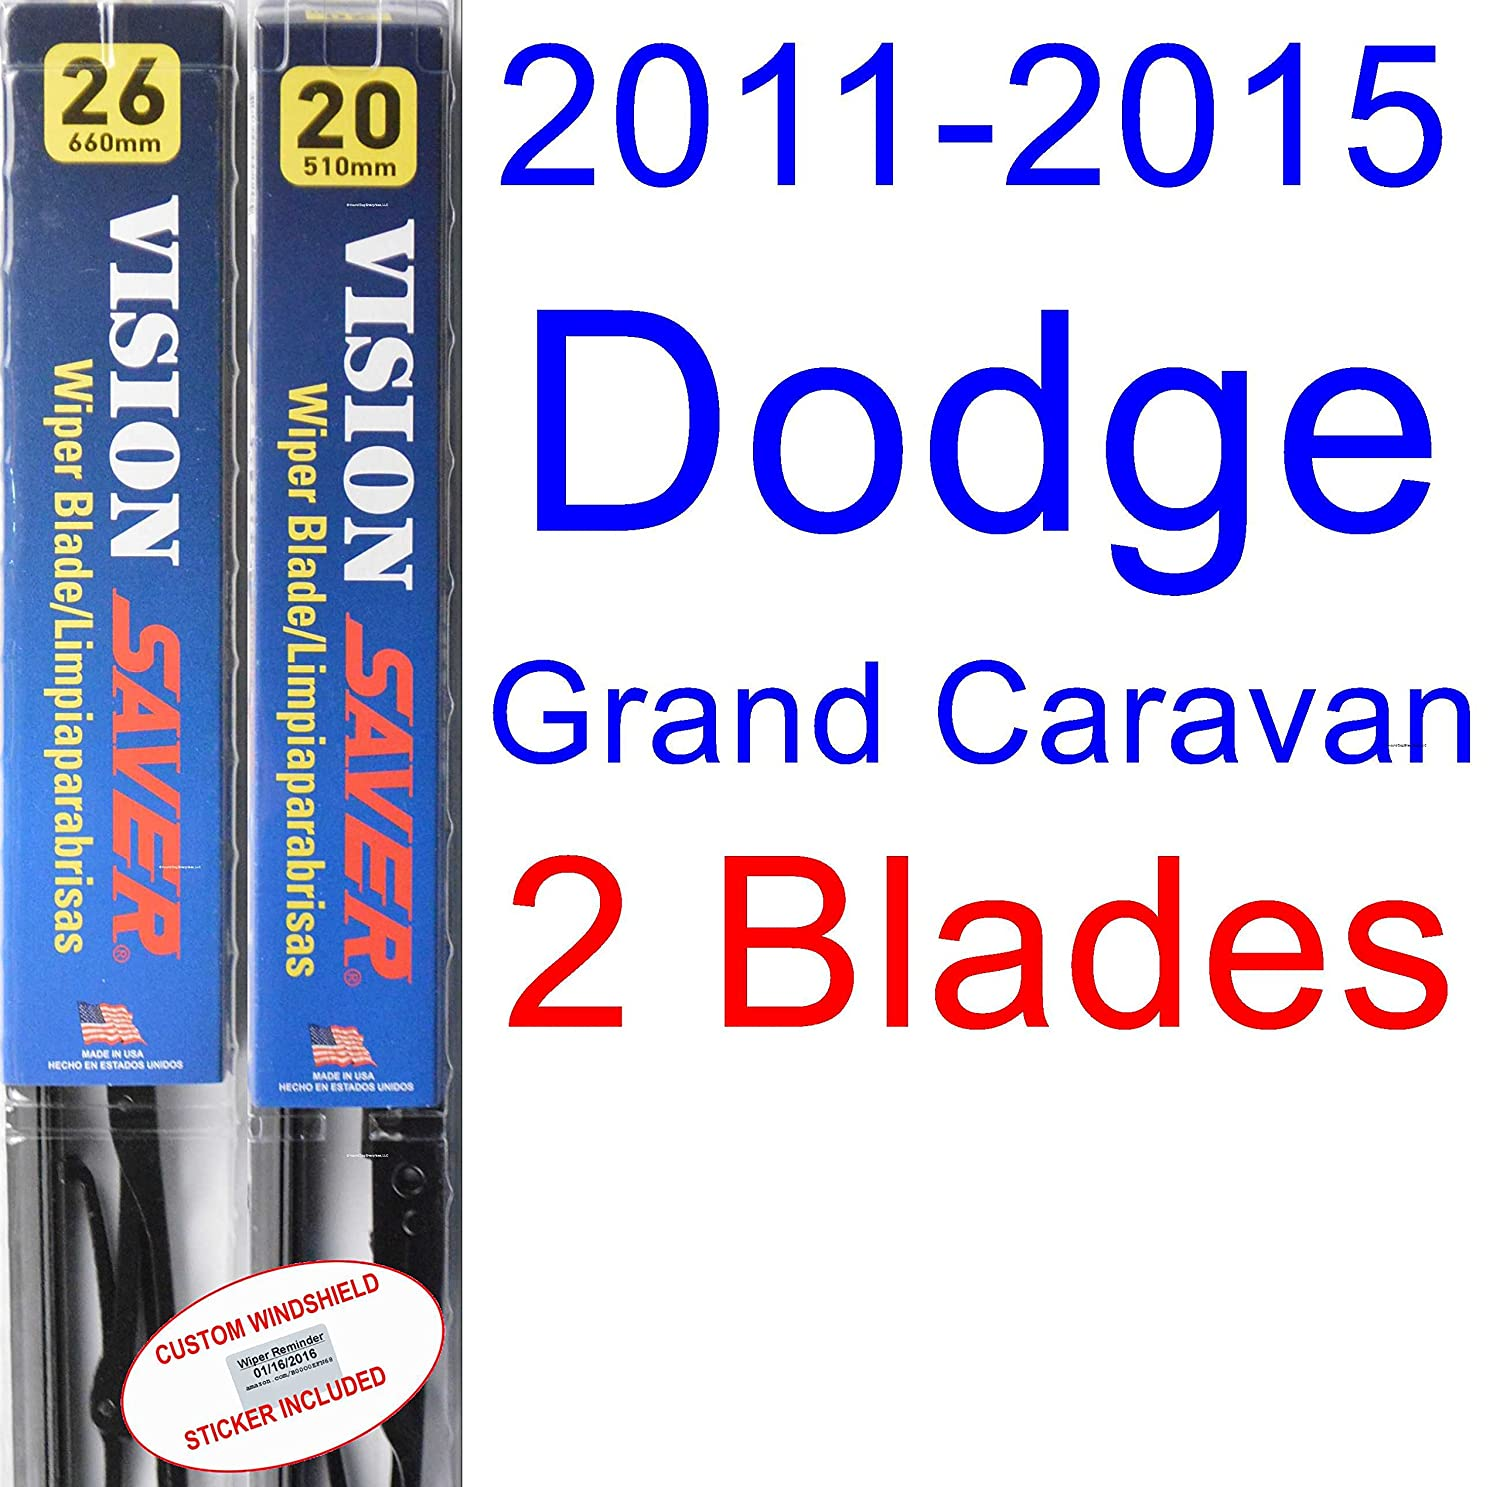 Amazon.com: 2011-2015 Dodge Grand Caravan Replacement Wiper Blade Set/Kit (Set of 2 Blades) (Saver Automotive Products-Vision Saver) (2012,2013,2014): ...